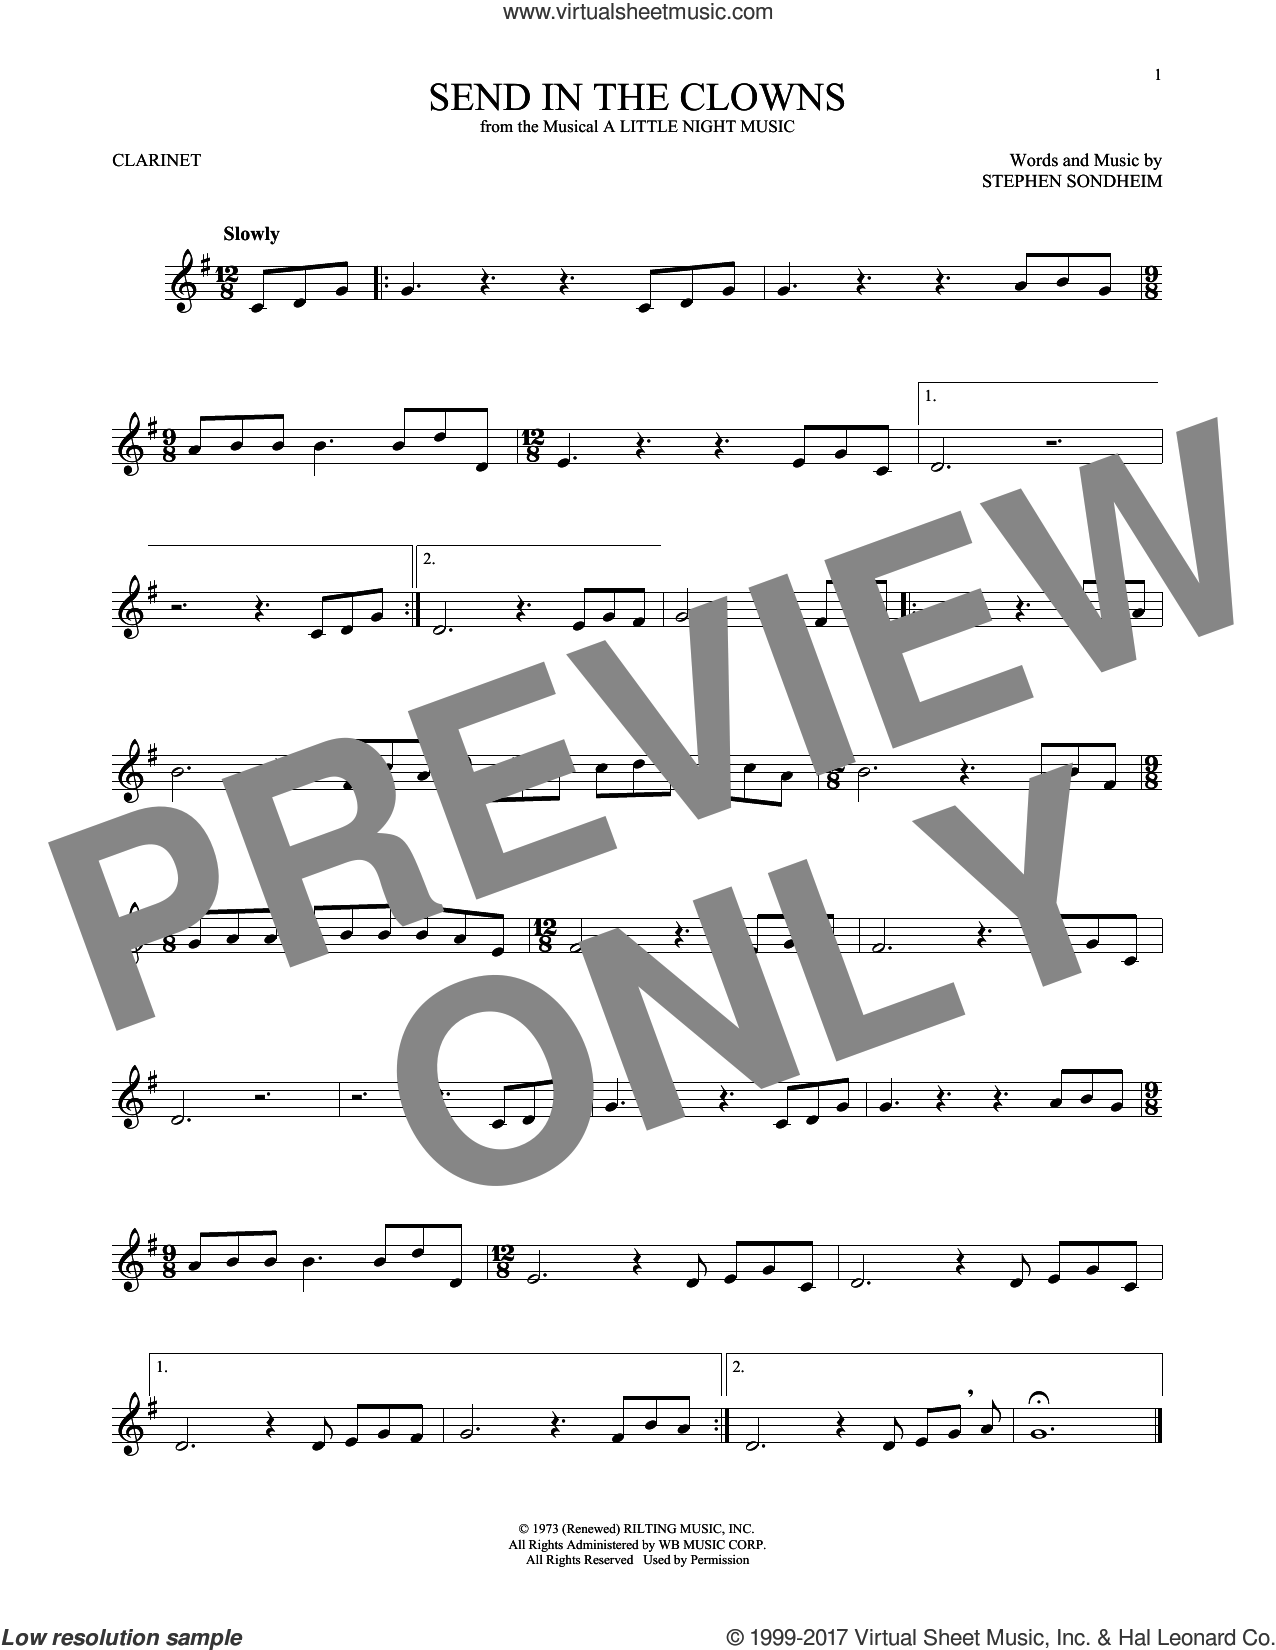 Send In The Clowns (from A Little Night Music) sheet music for clarinet solo by Stephen Sondheim, intermediate skill level